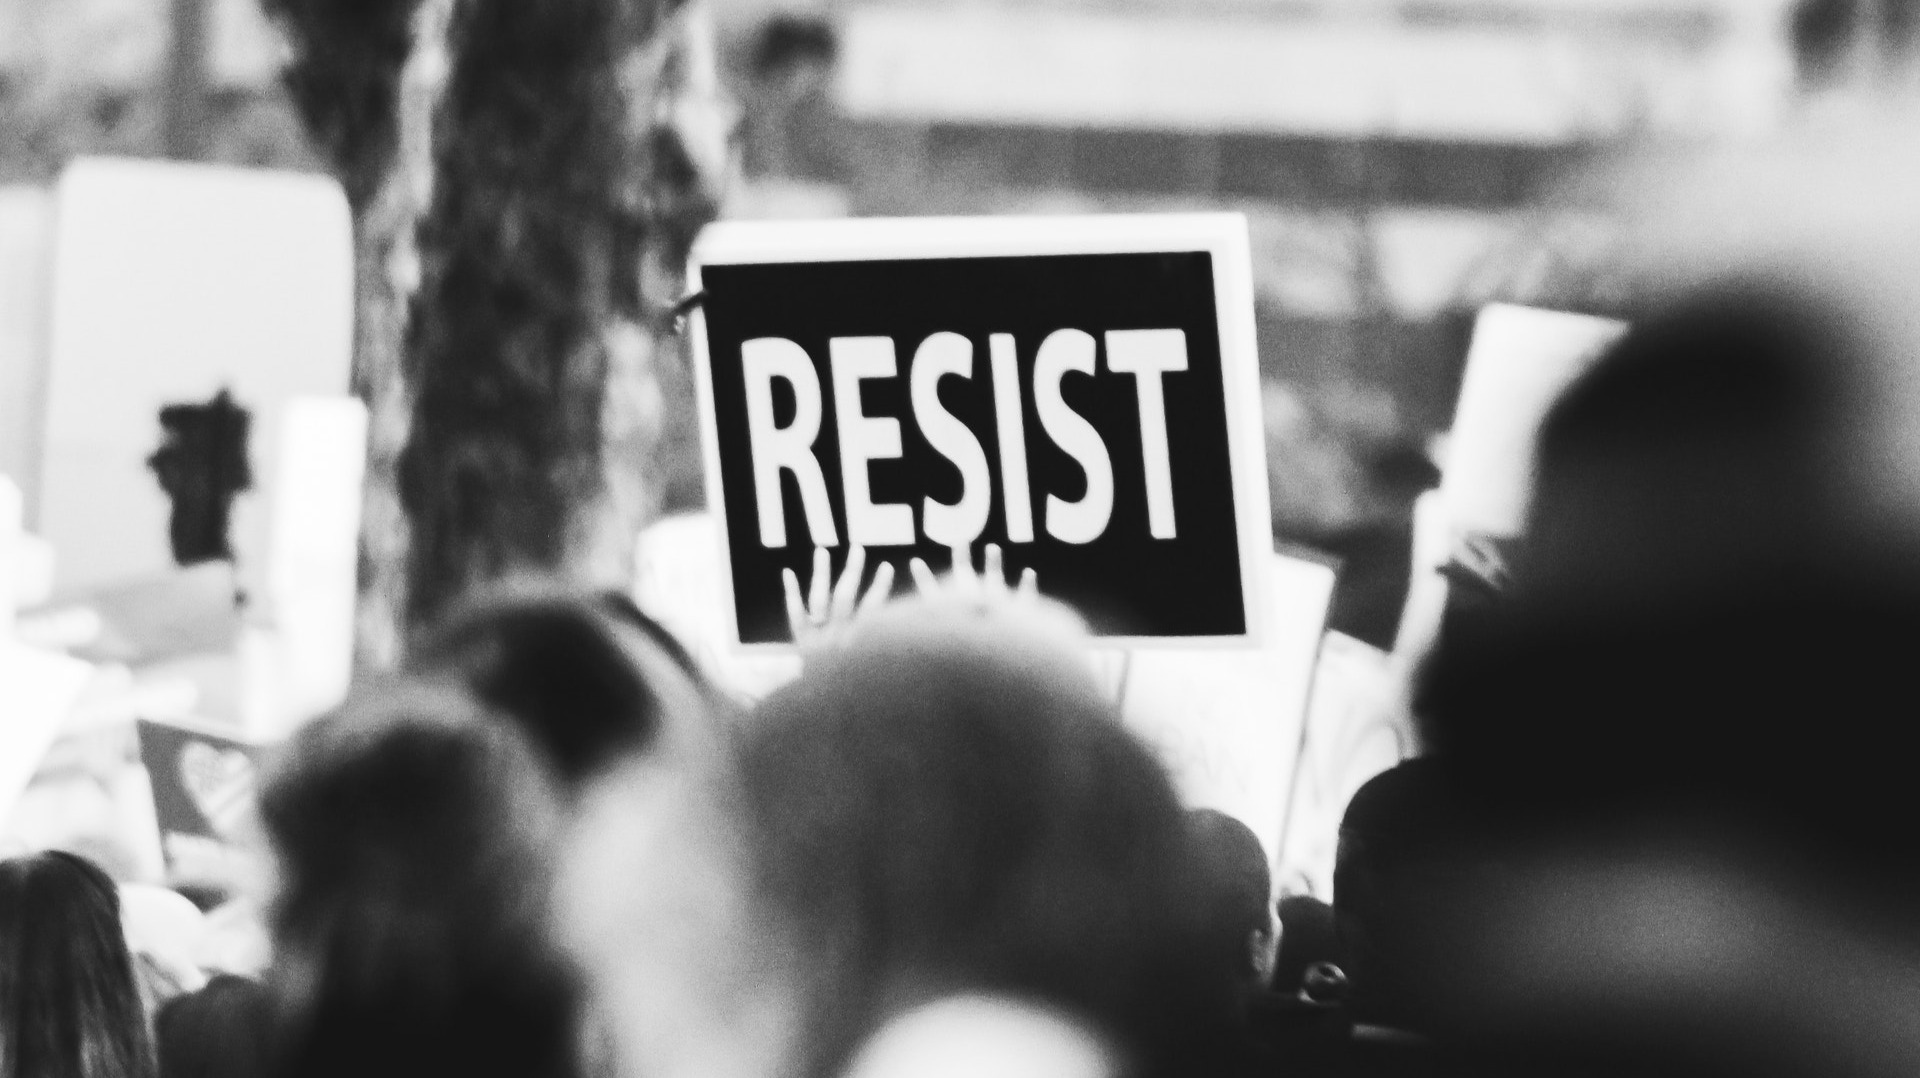 https://www.pexels.com/photo/monochrome-photo-of-resist-signage-3141240/